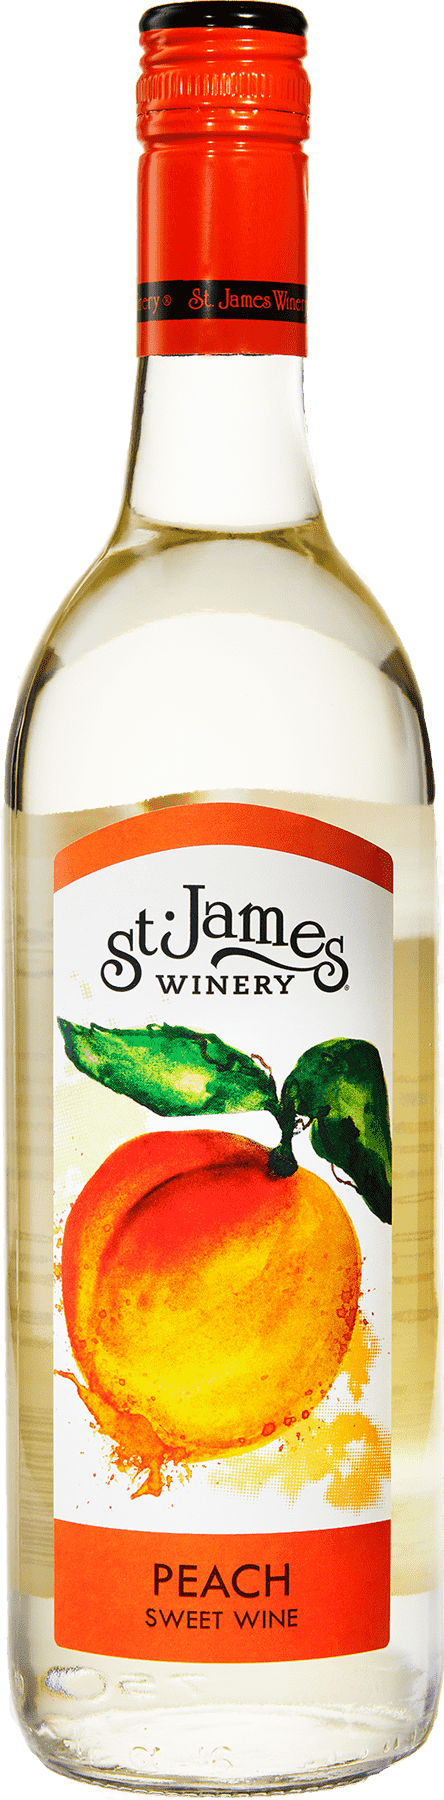 Peach Wine - Fruit Wines - St. James Winery